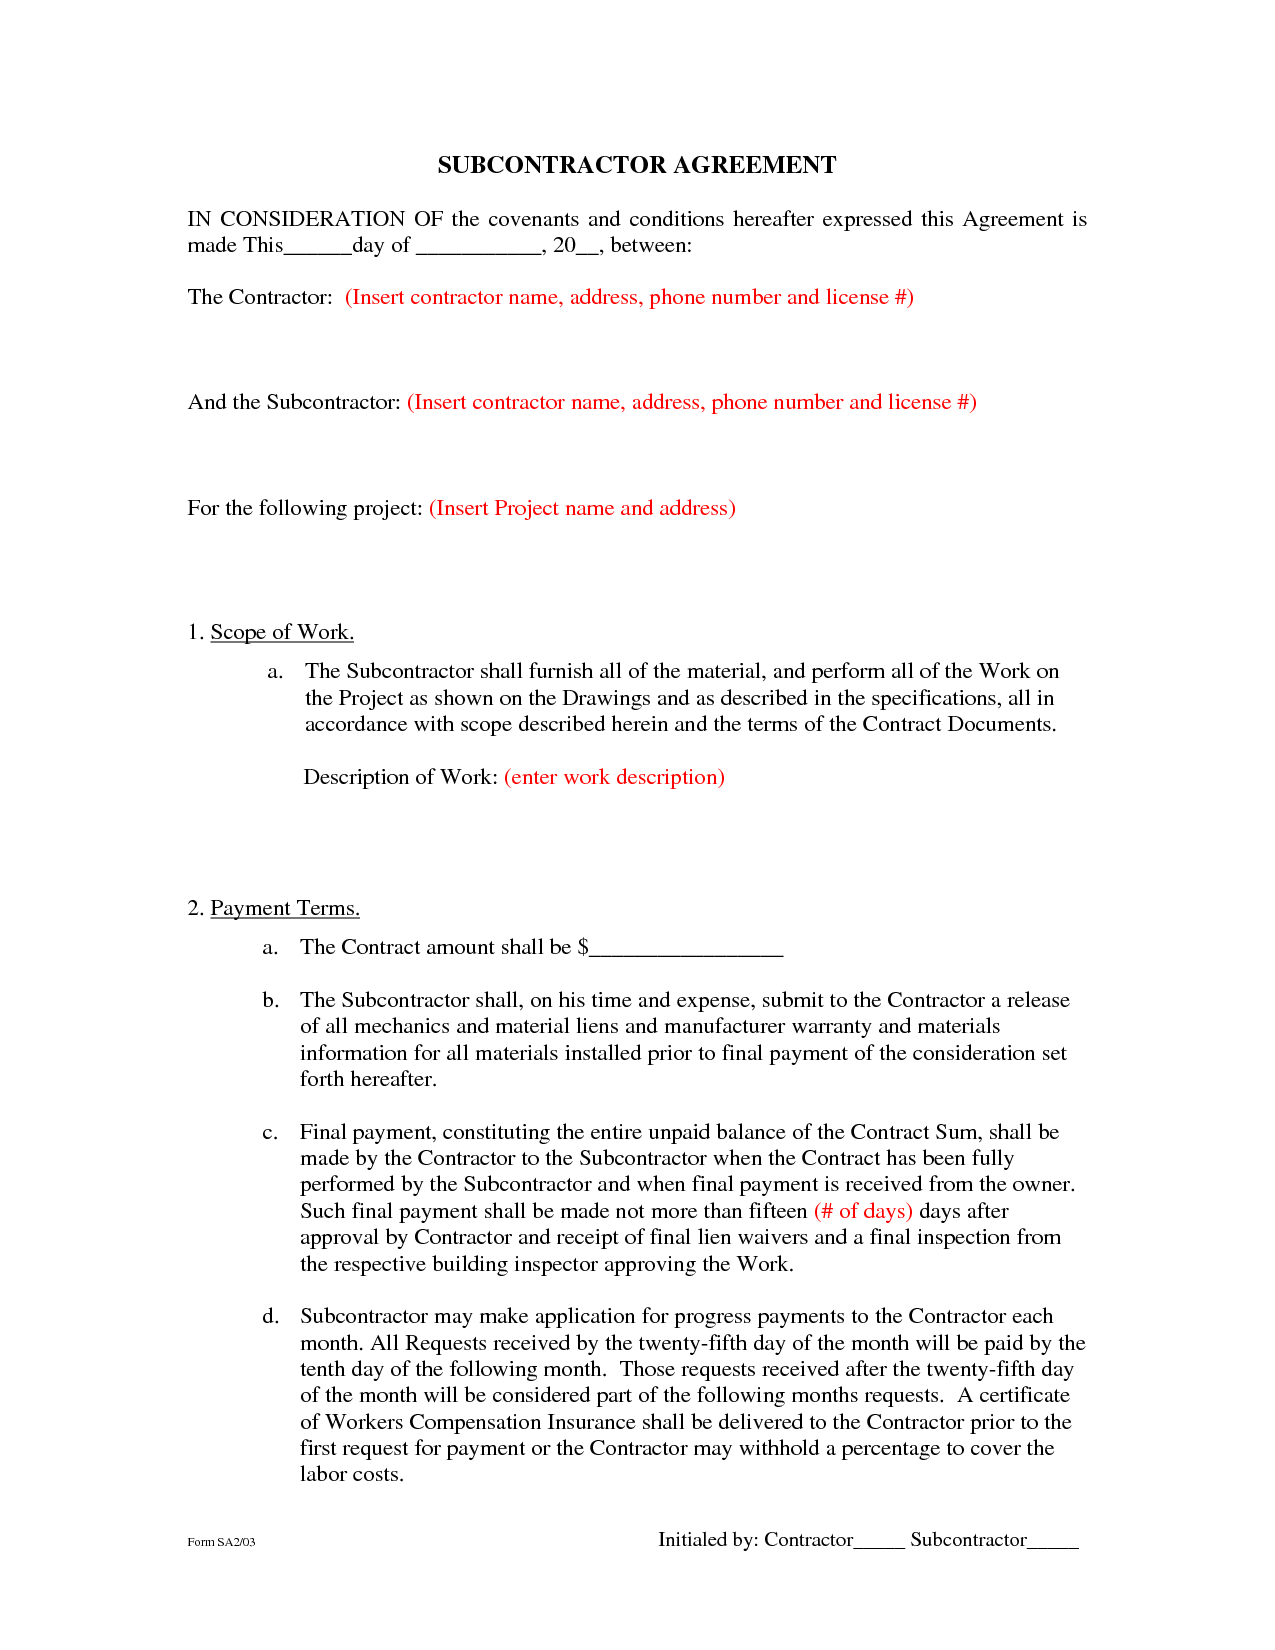 subcontractor agreement forms by beunaventuralongjas